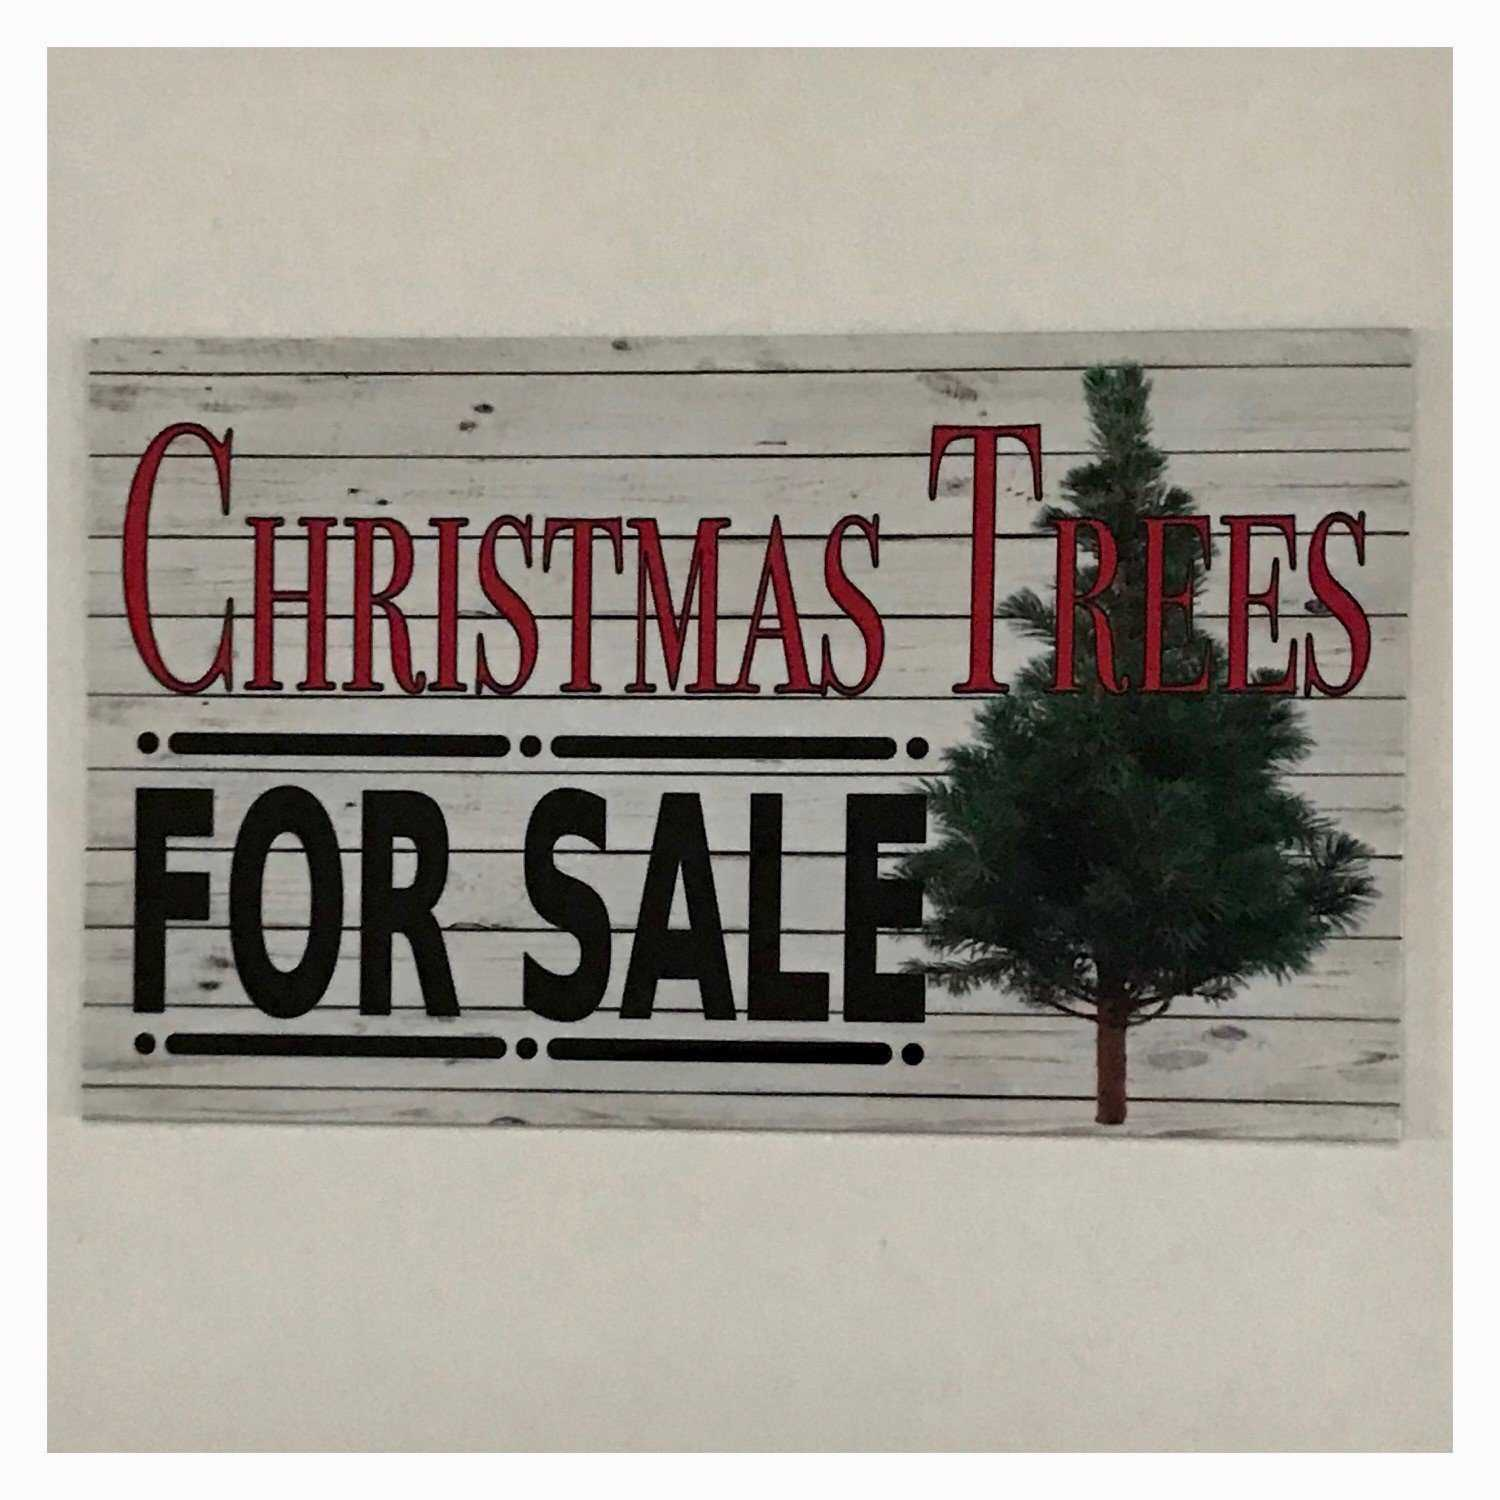 Christmas Trees For Sale Vintage Sign - The Renmy Store